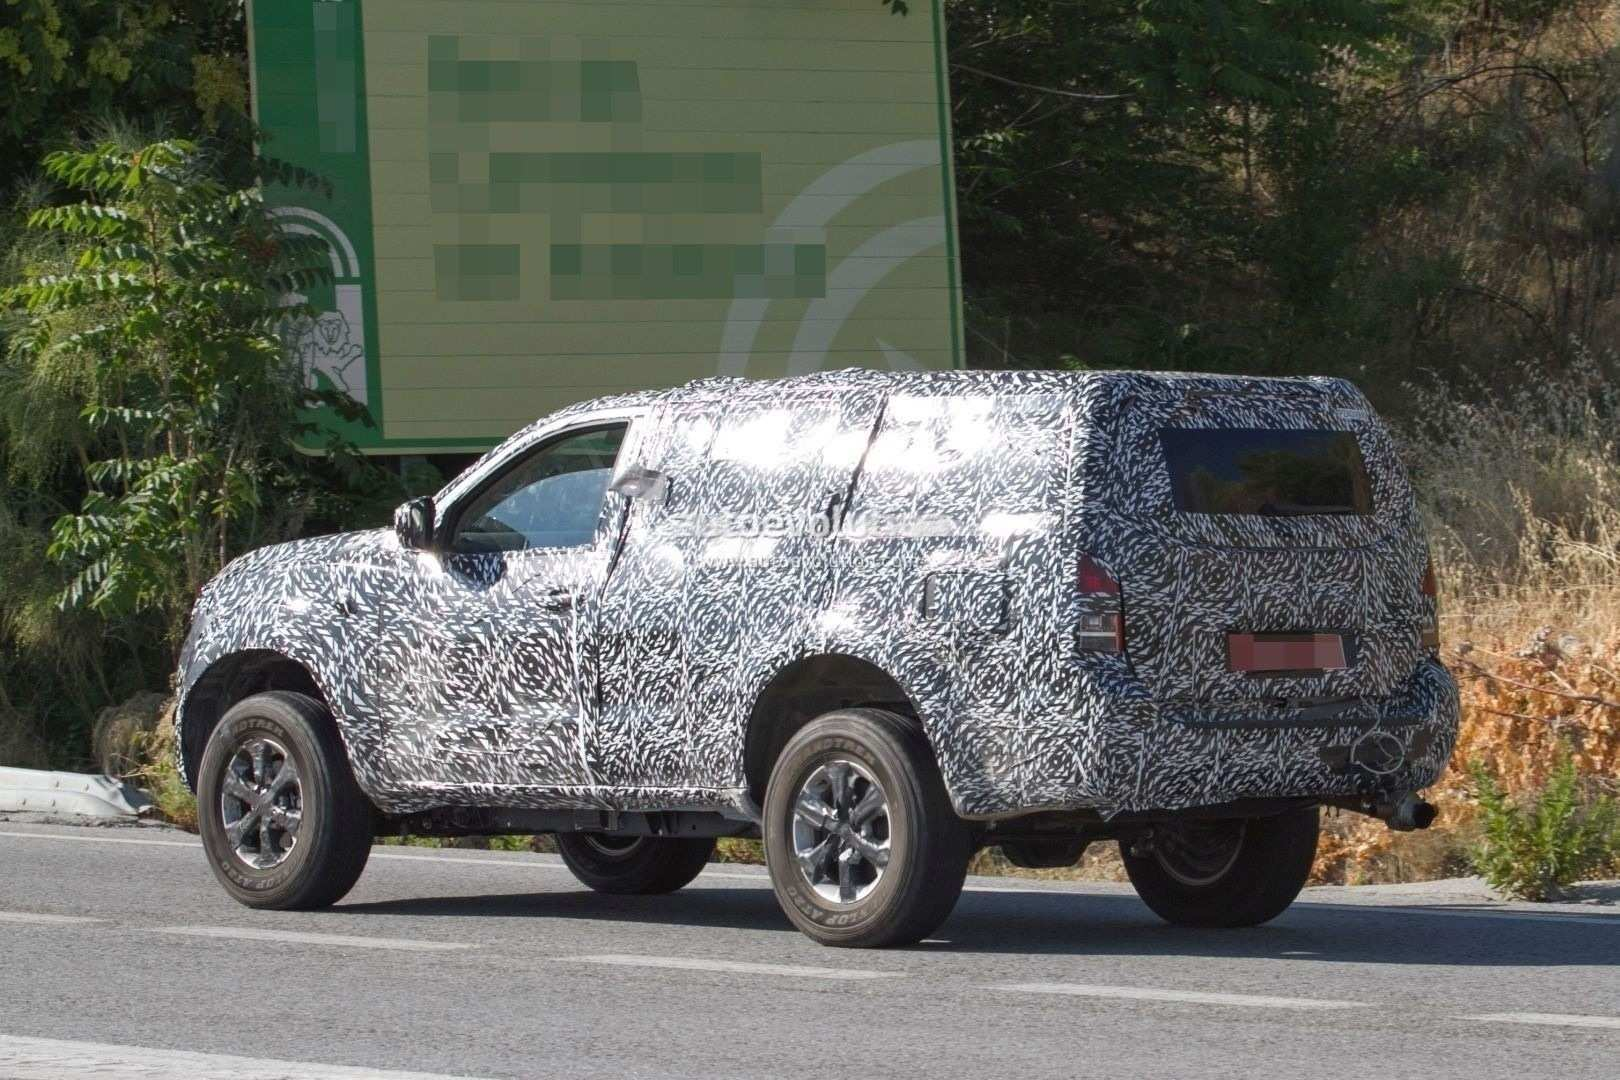 37 Gallery of Nissan Patrol 2019 Price First Drive Spy Shoot with Nissan Patrol 2019 Price First Drive